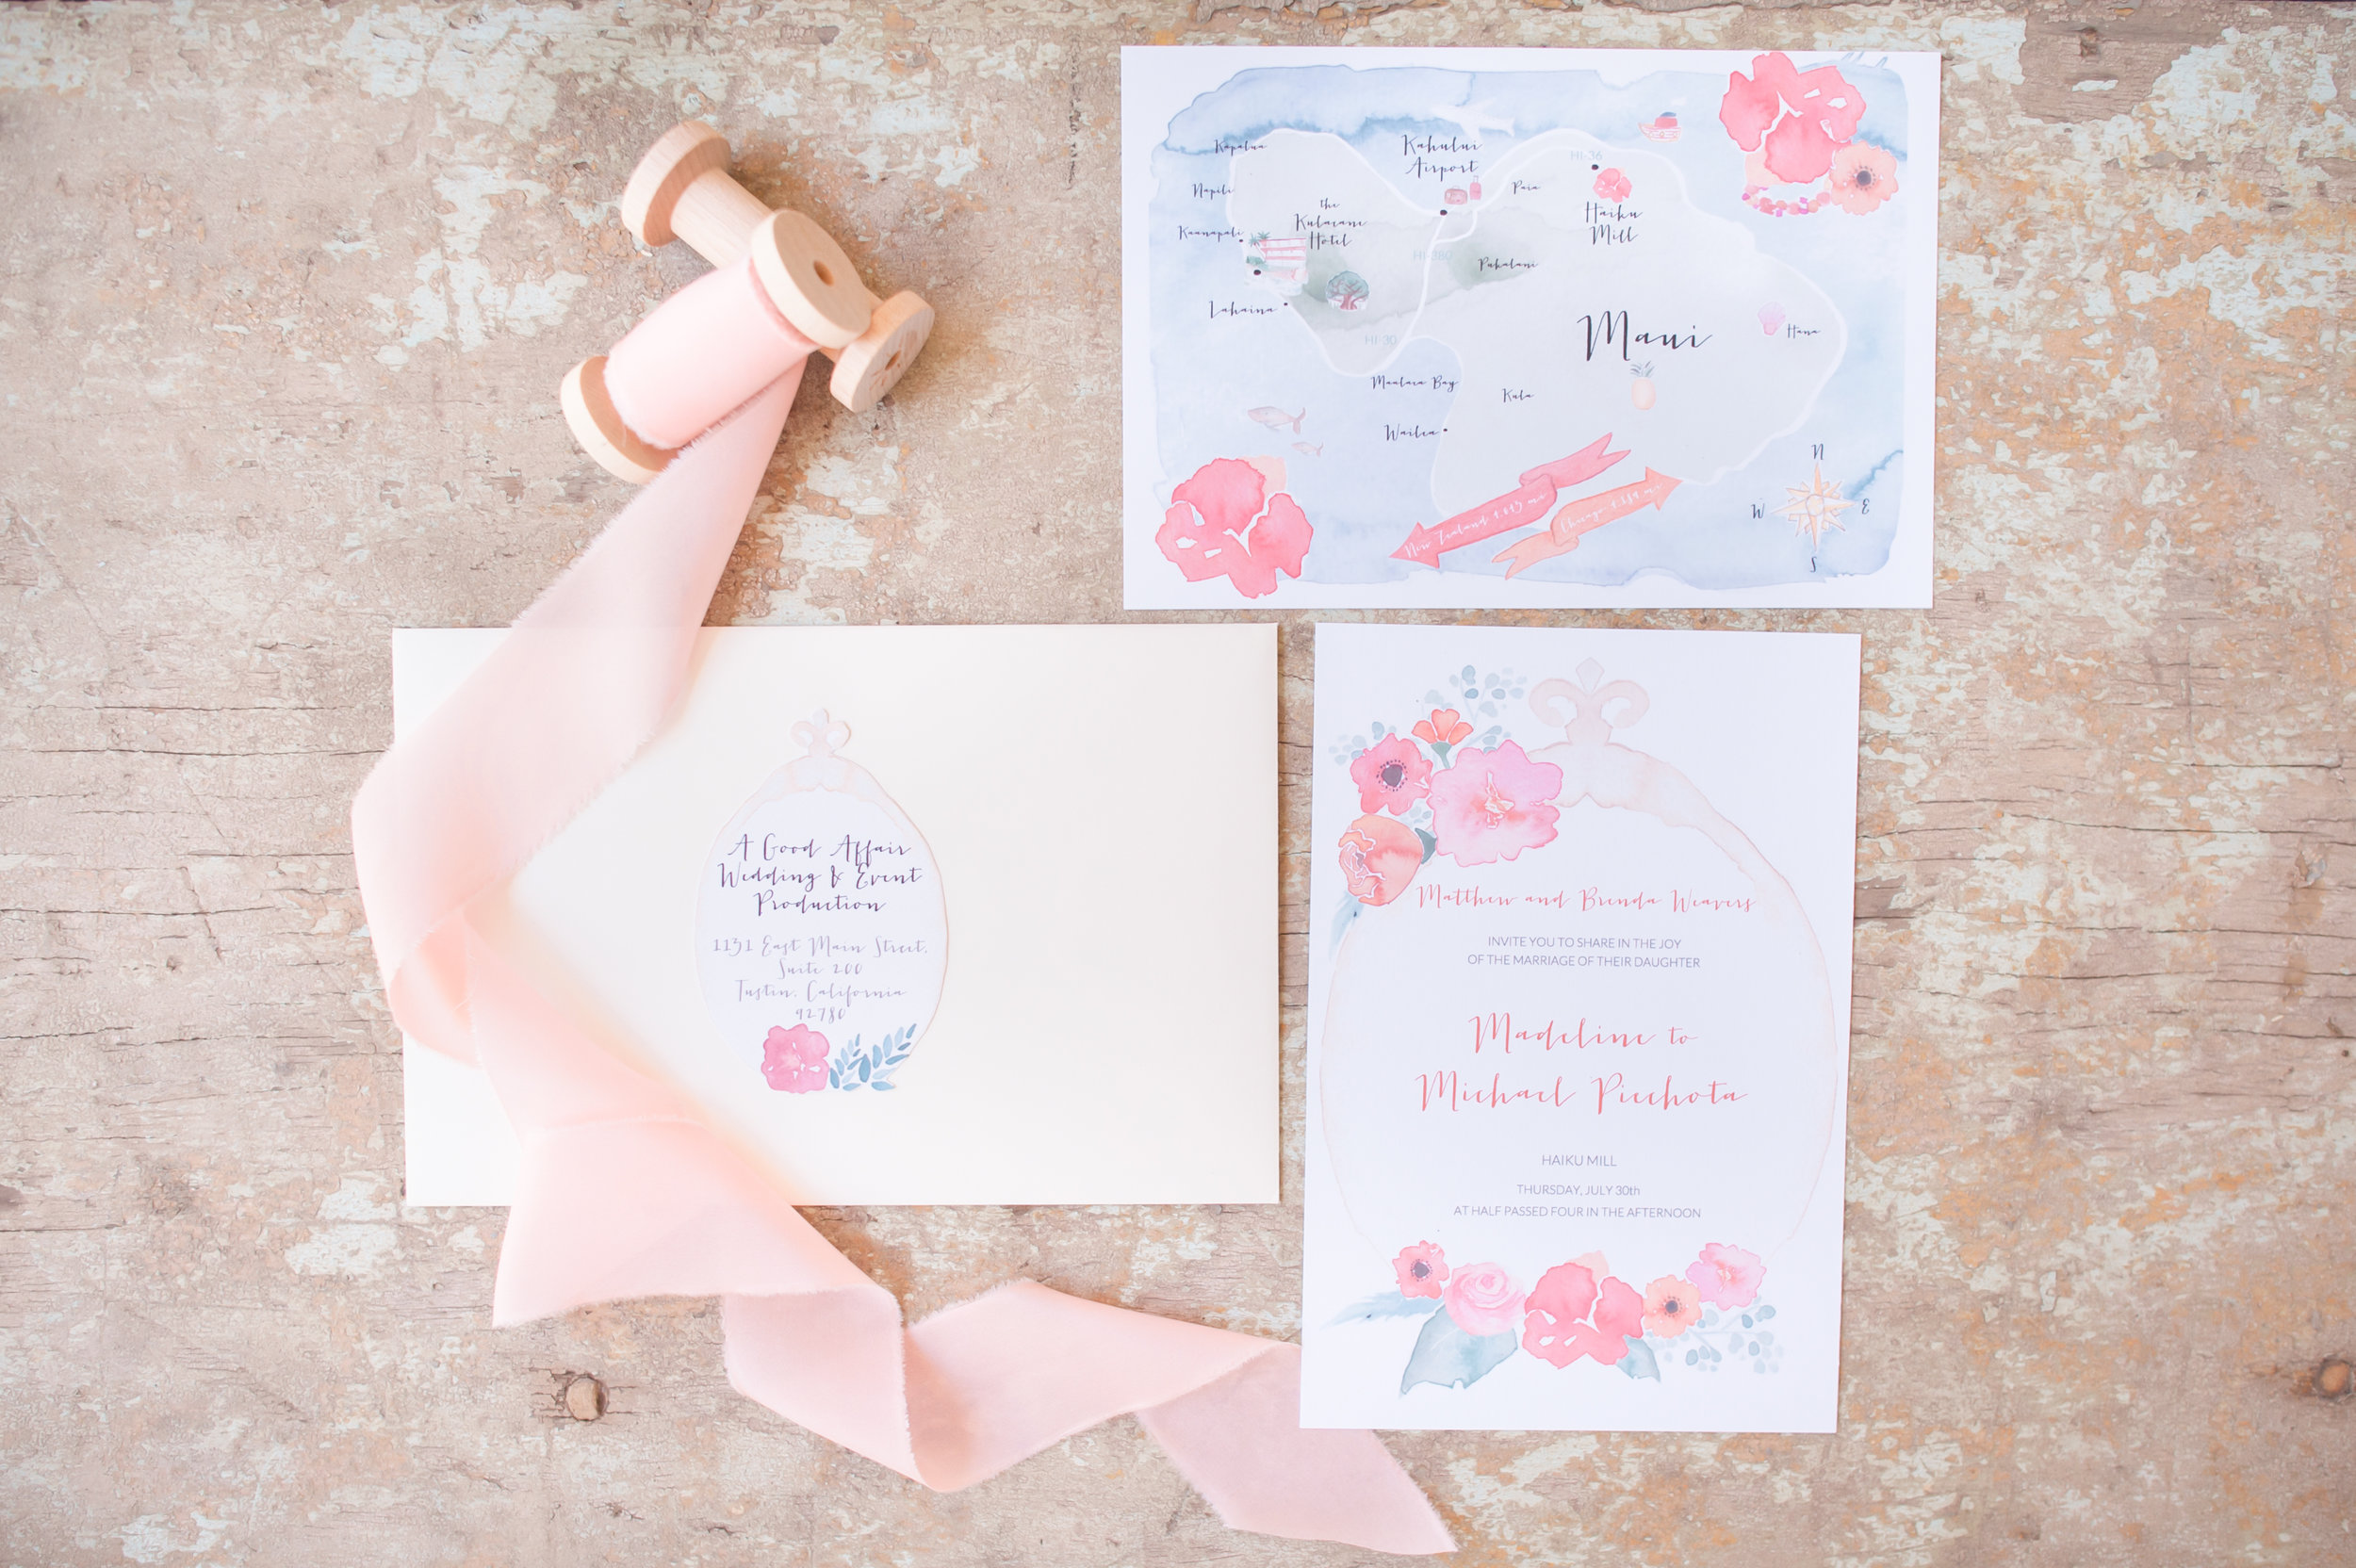 Watercolor Invitation, Place Cards and Menu for Maui, Hawaii Wedding | Vie de Vic Fine Illustration & Stationery | Photo: KLK Photography | Event Design: A Good Affair